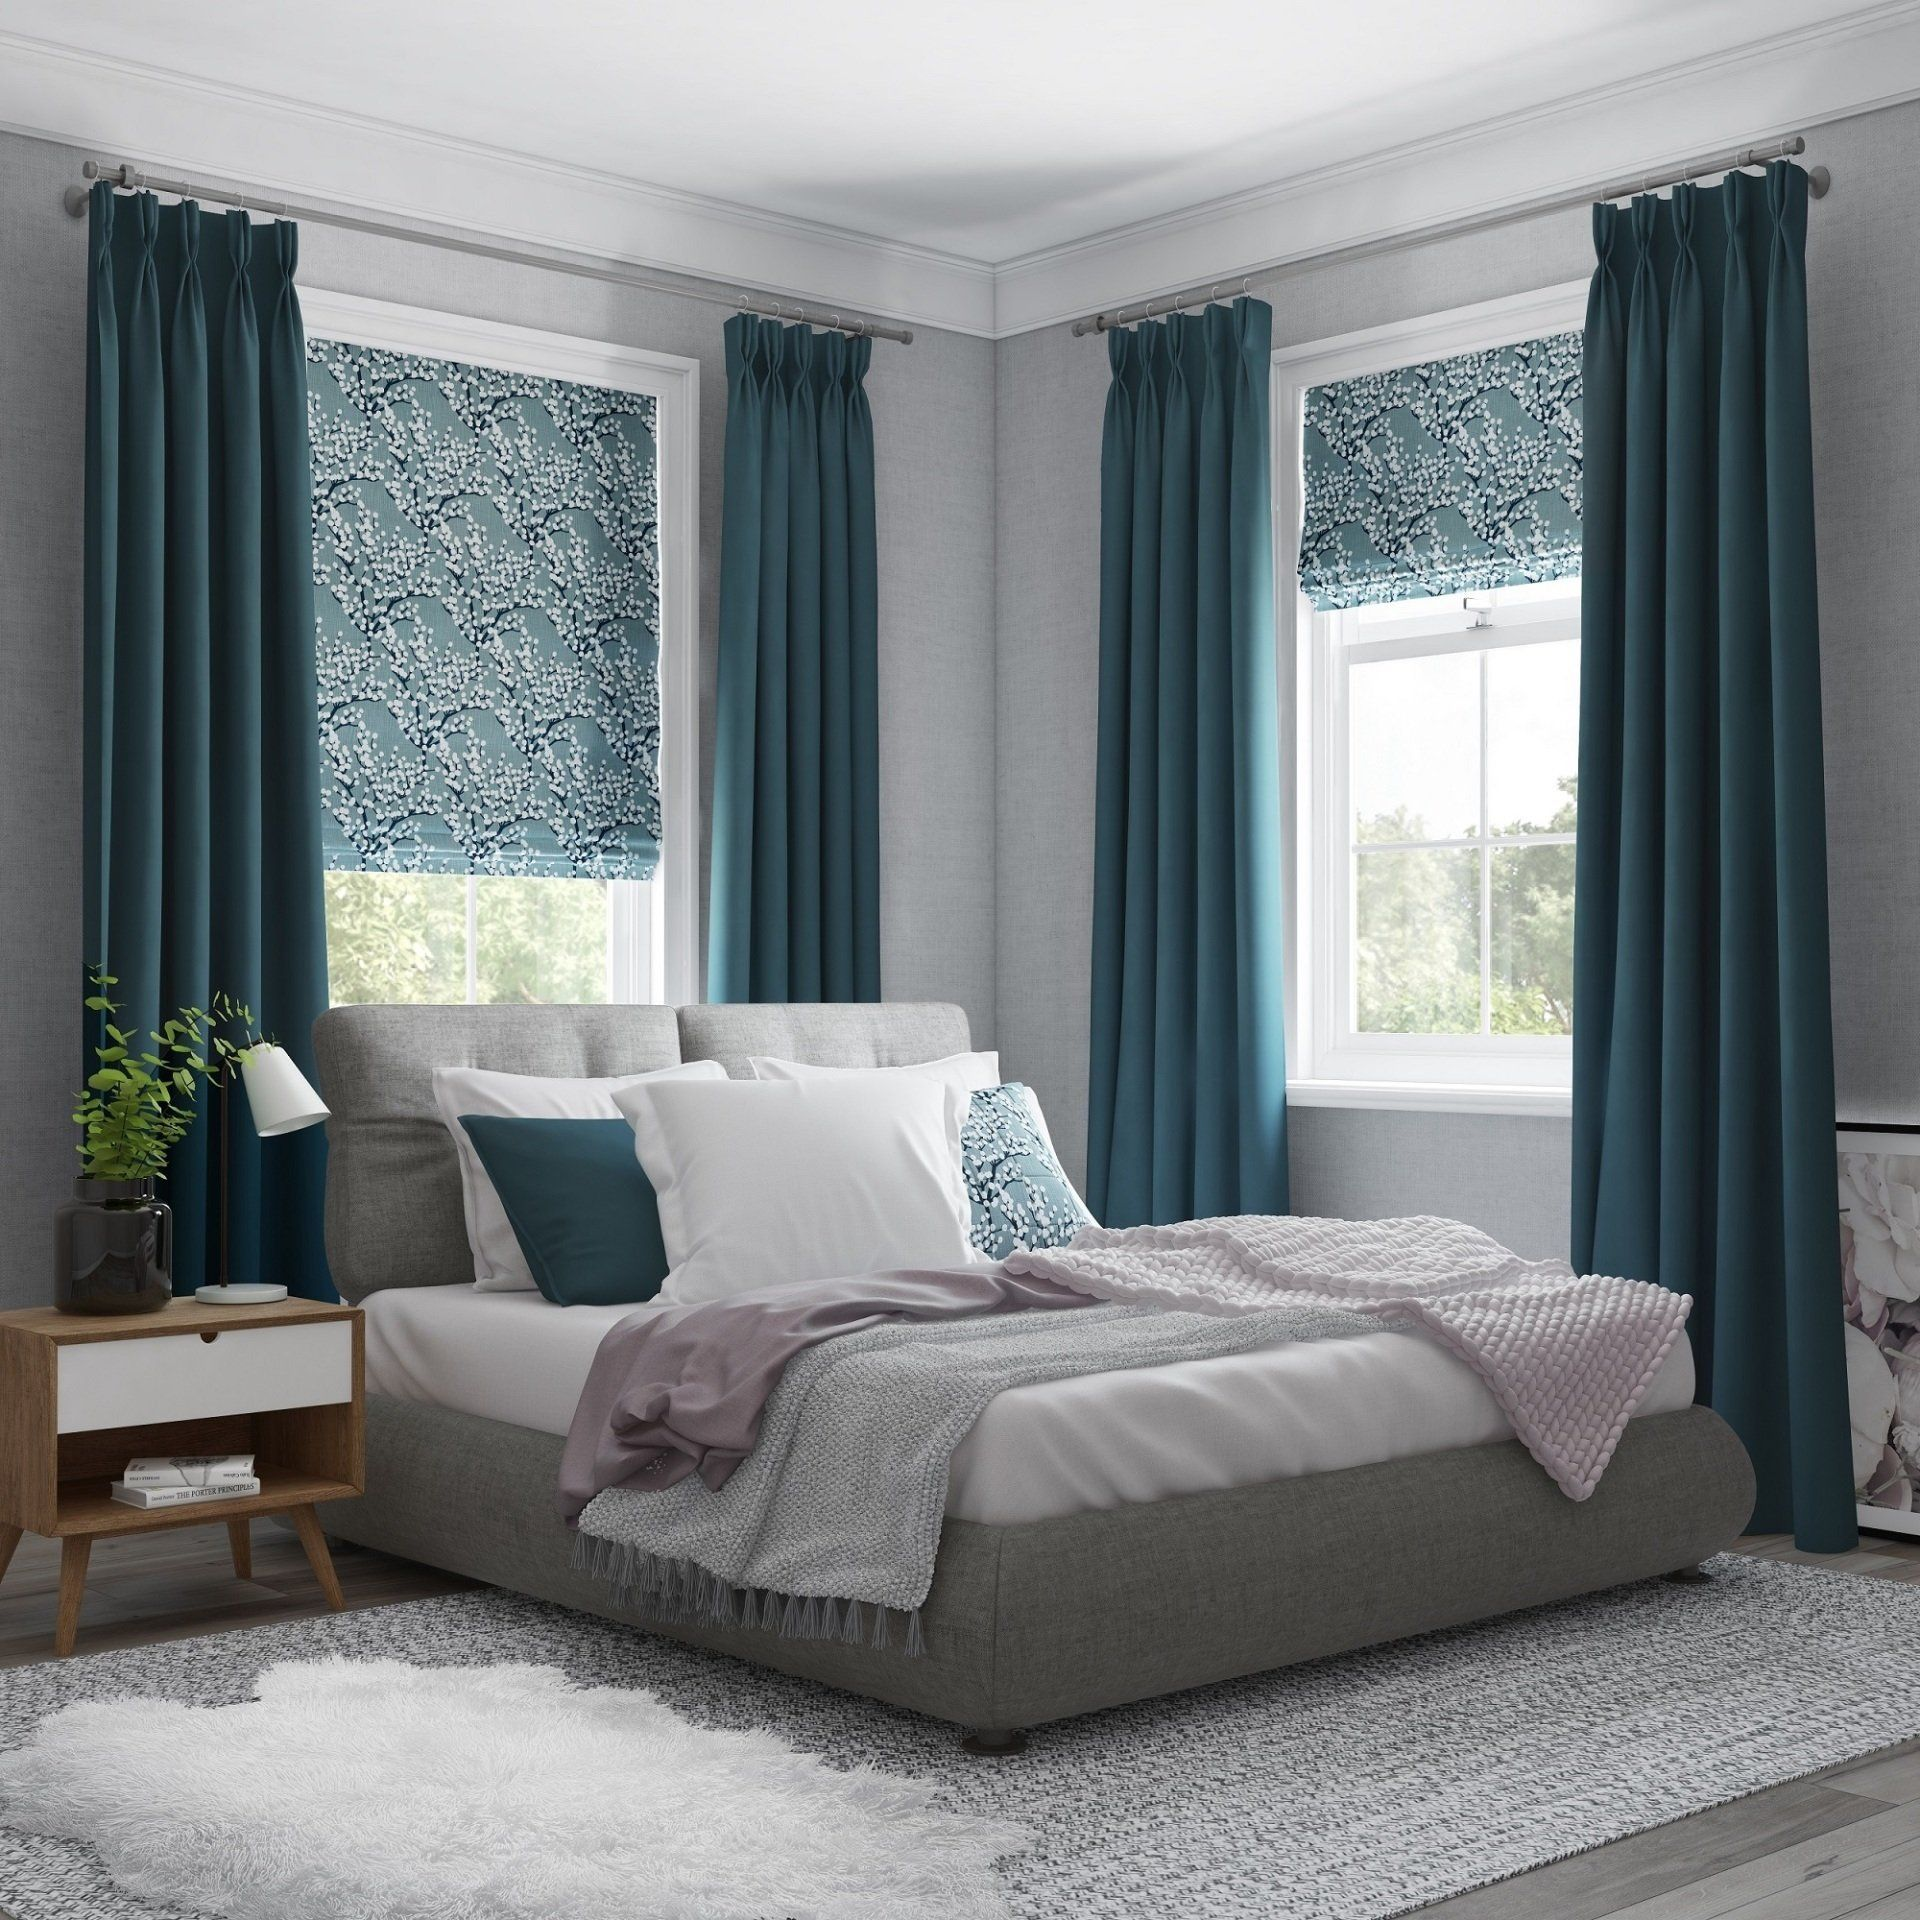 Accessorising Your Bedroom Try Contrasting Fabrics In The